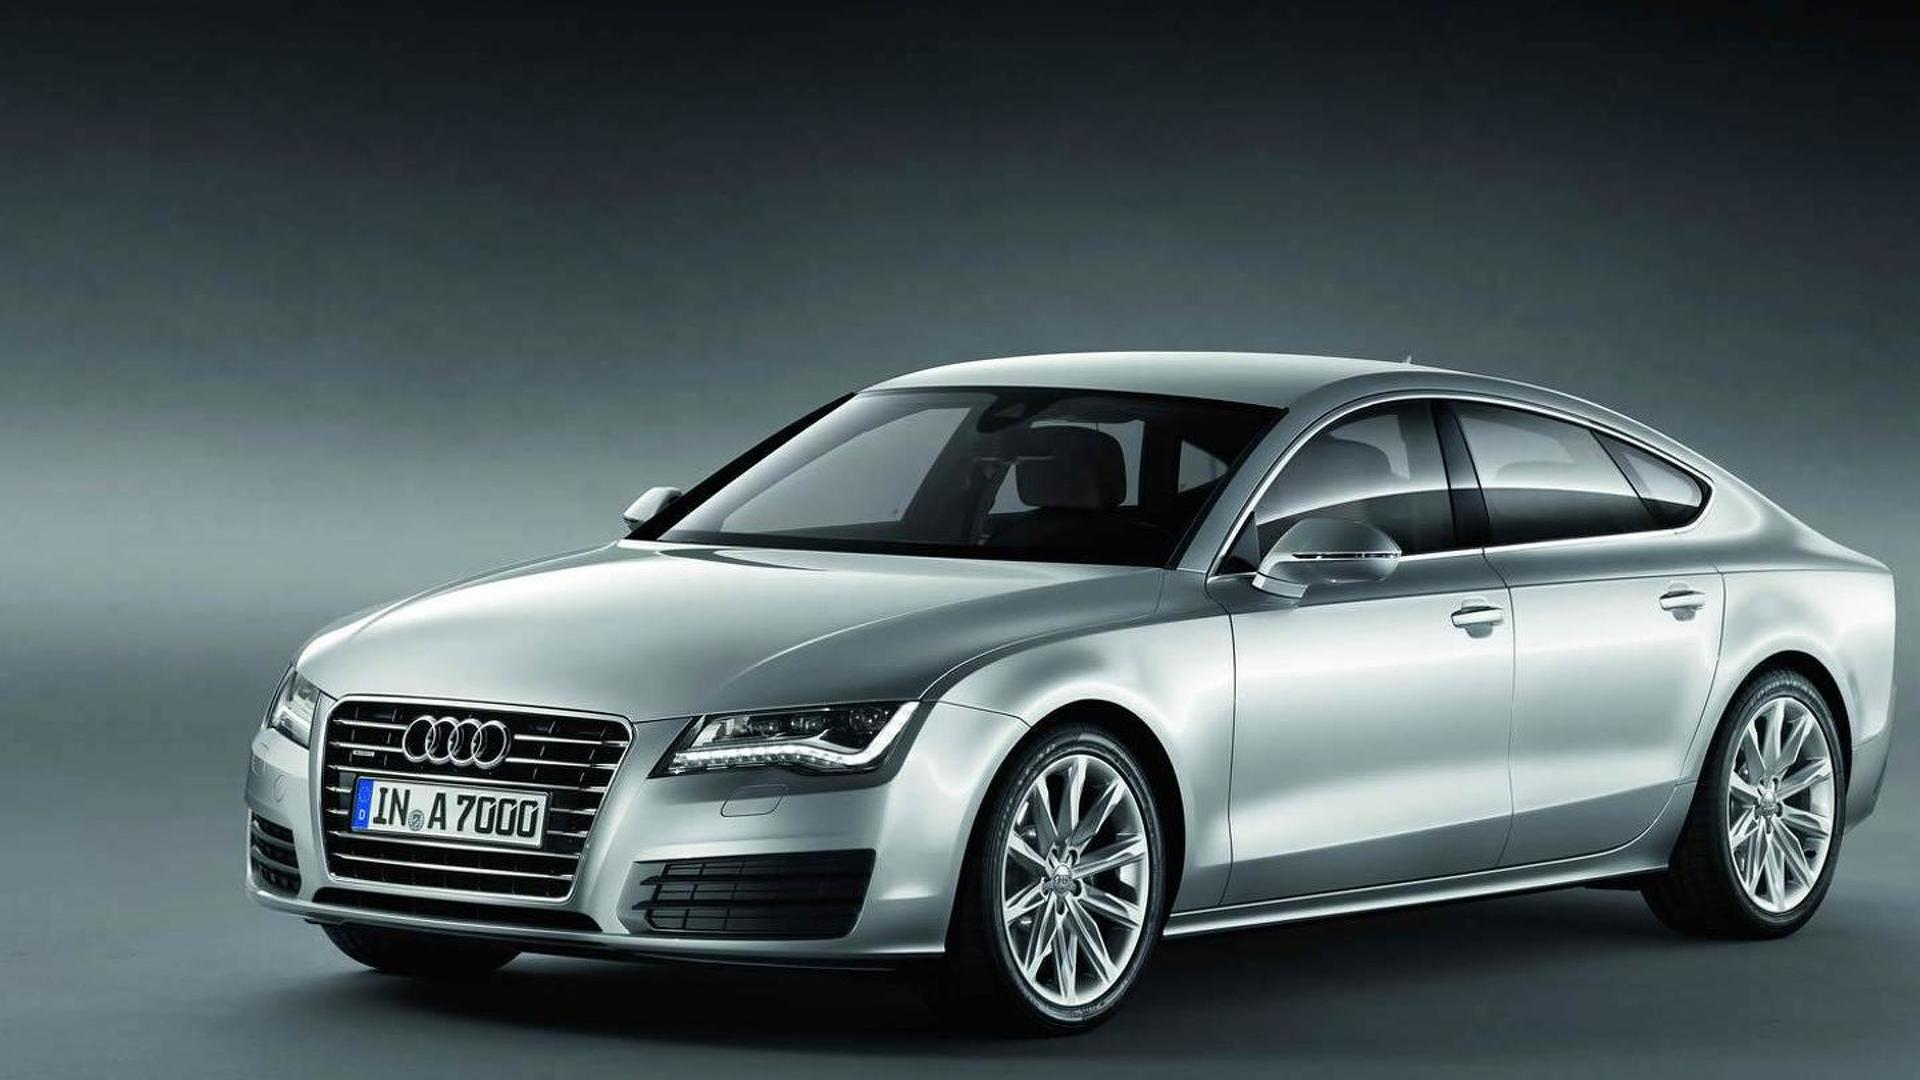 2011 Audi A7 Sportback Officially Unveiled In Munich Video